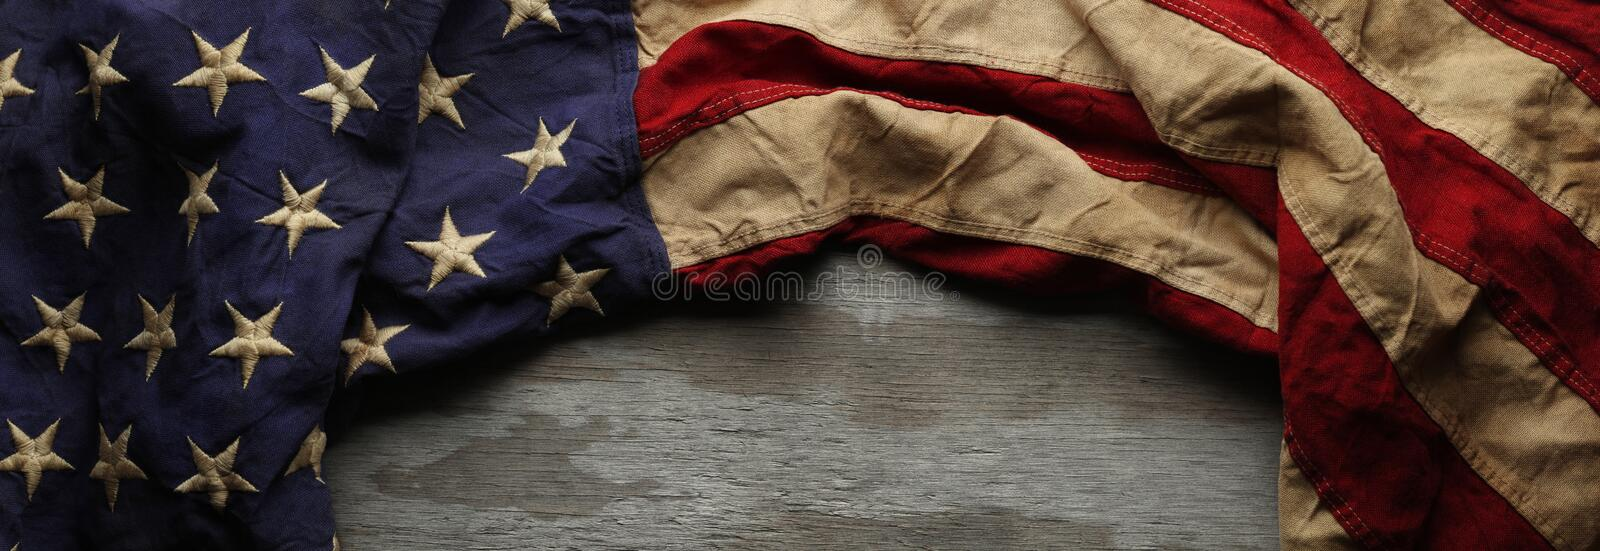 American flag for Memorial day or Veteran`s day background. Vintage red, white, and blue American flag for Memorial day or Veteran`s day background stock photos